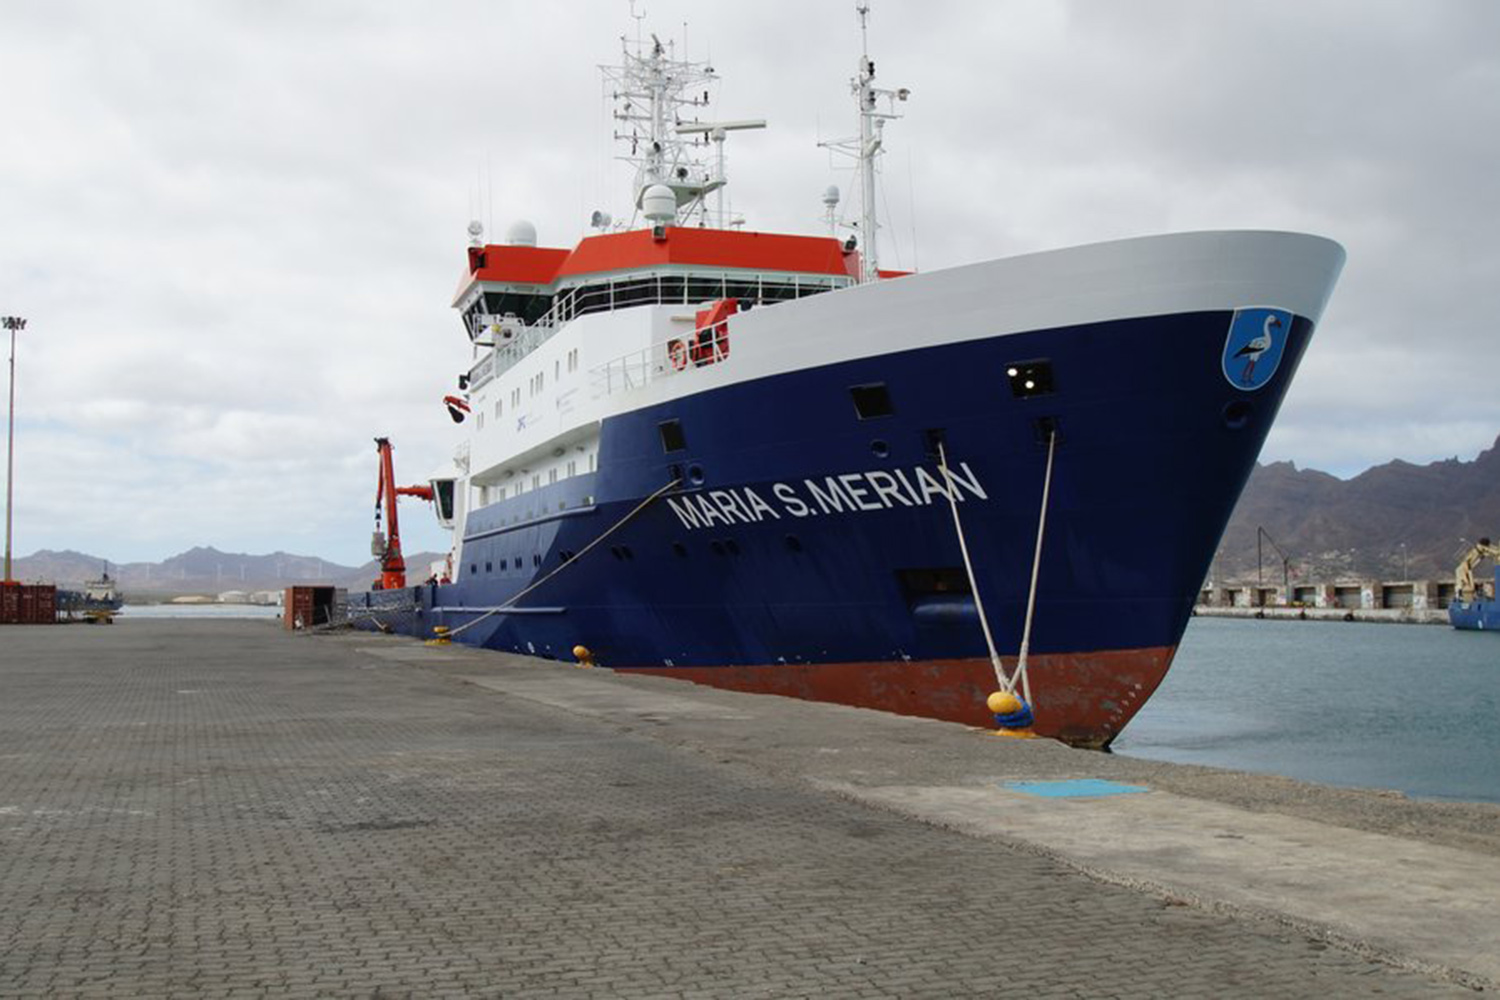 The German RV MARIA S. MERIAN in Mindelo. Photo: Björn Fiedler, GEOMAR